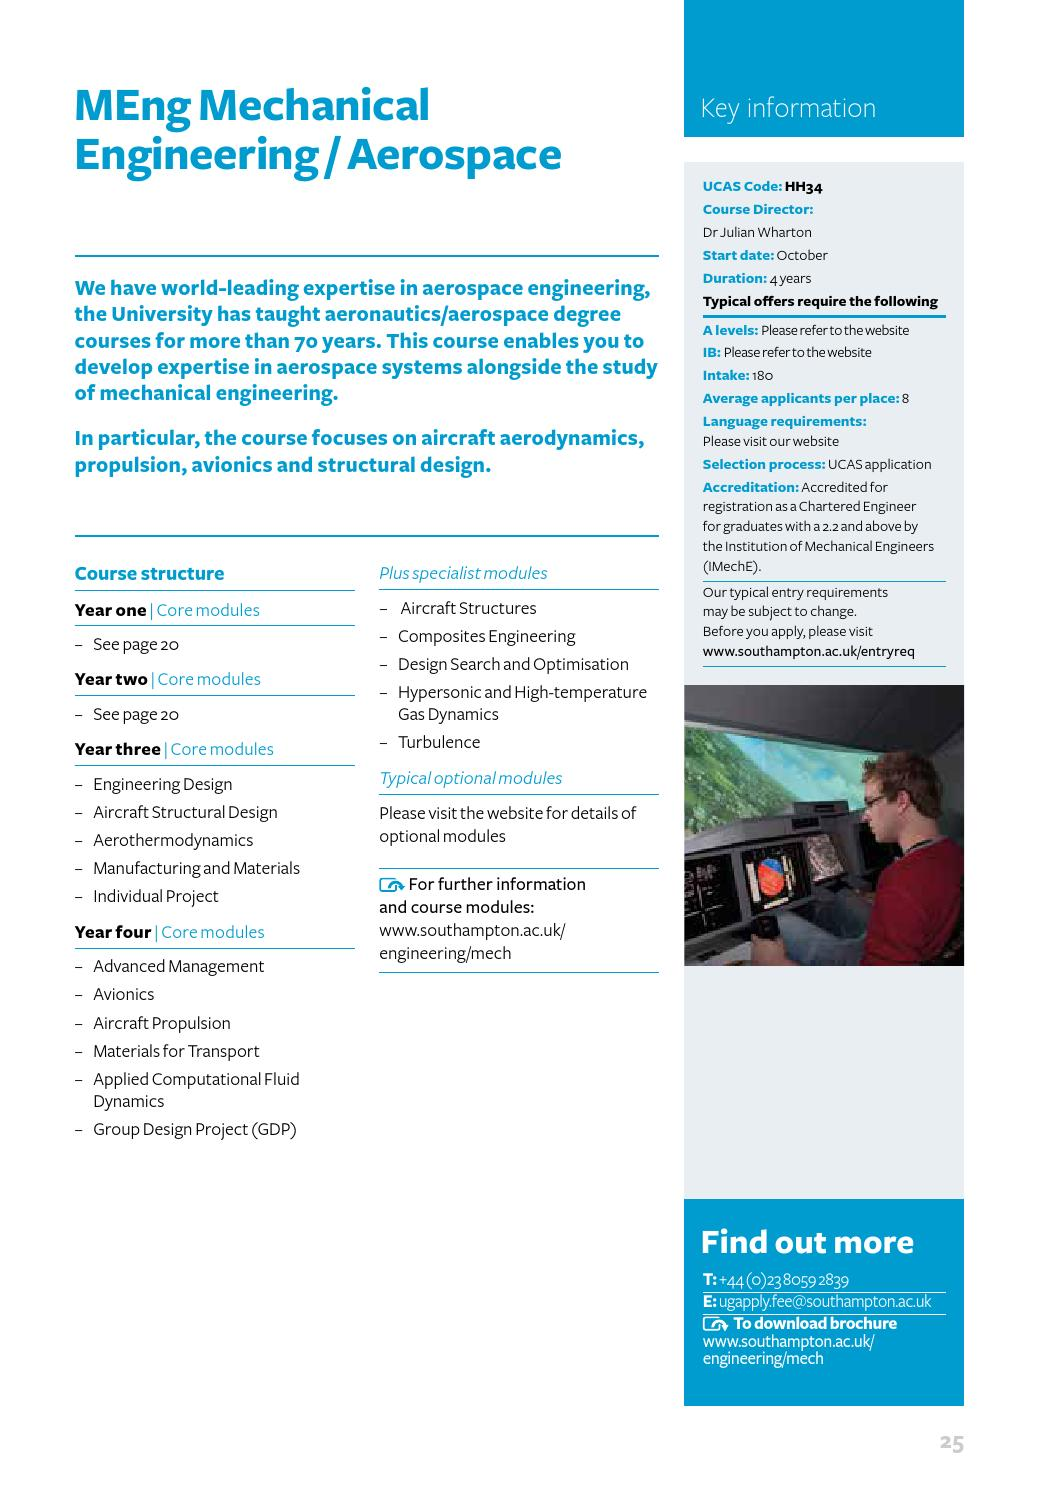 Mechanical Engineering undergraduate courses brochure 2016